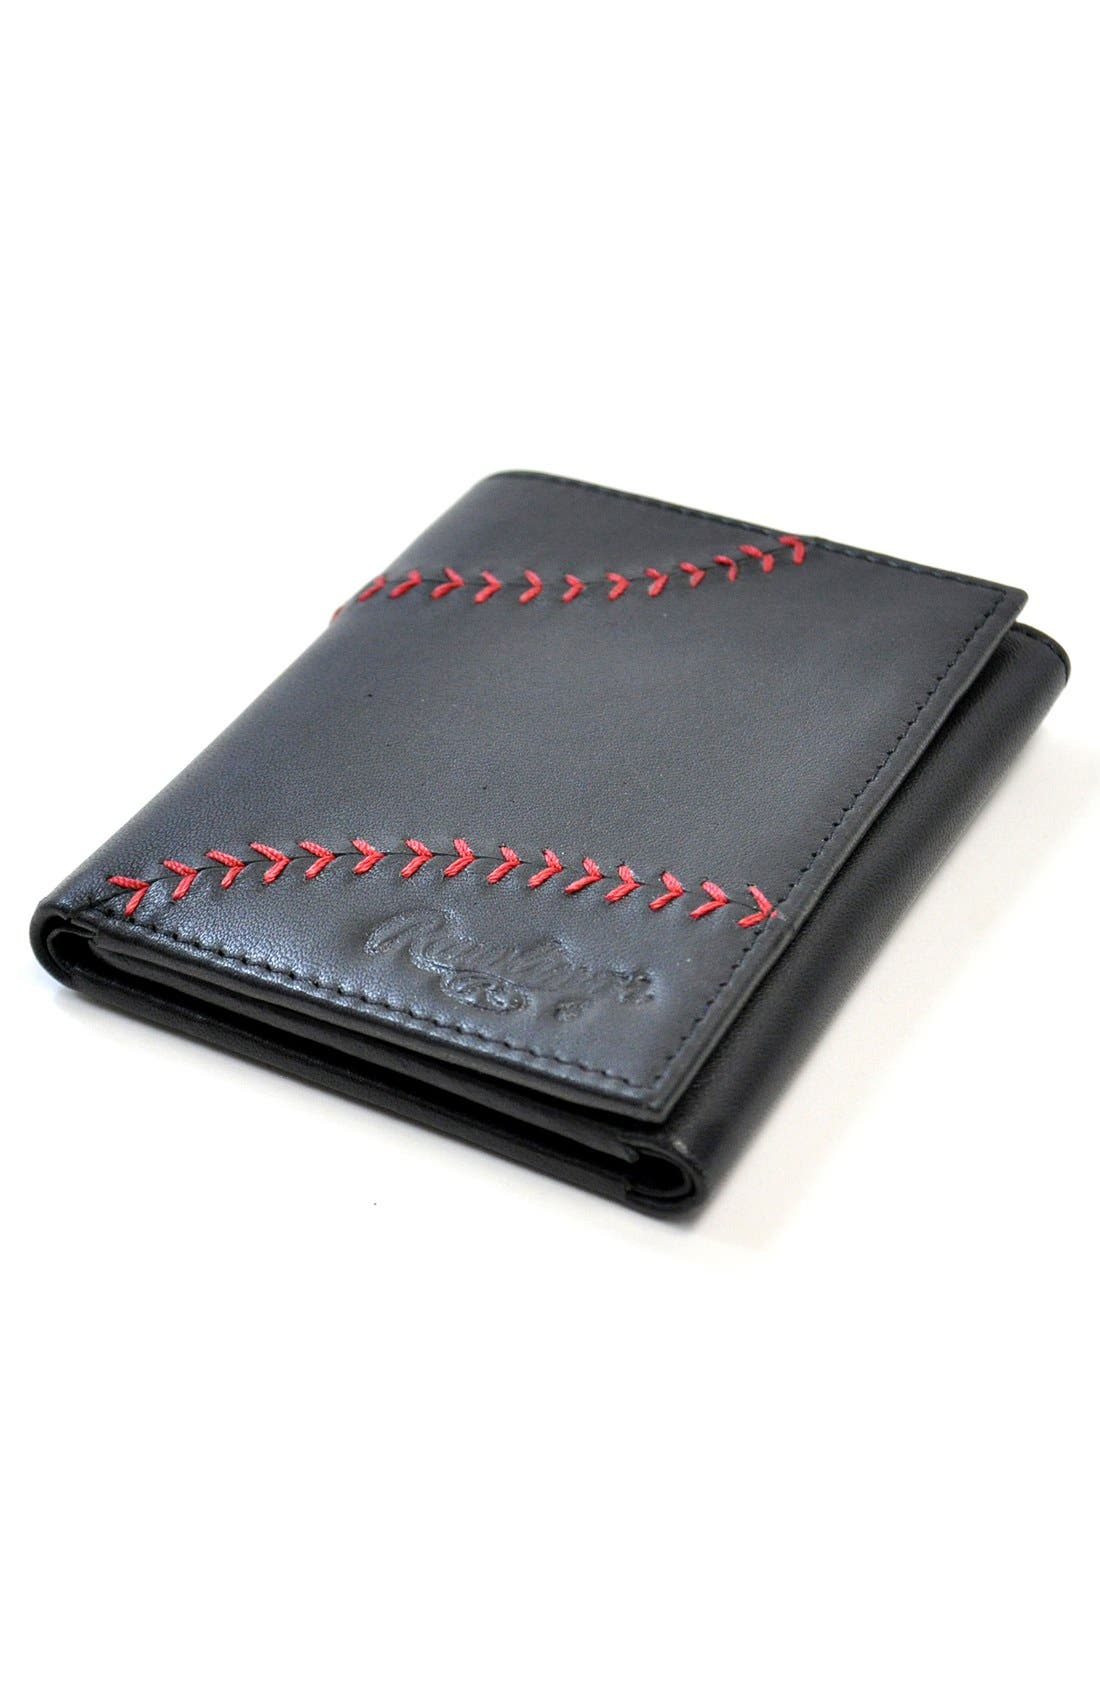 Baseball Stitch Leather Trifold Wallet,                             Alternate thumbnail 5, color,                             Black